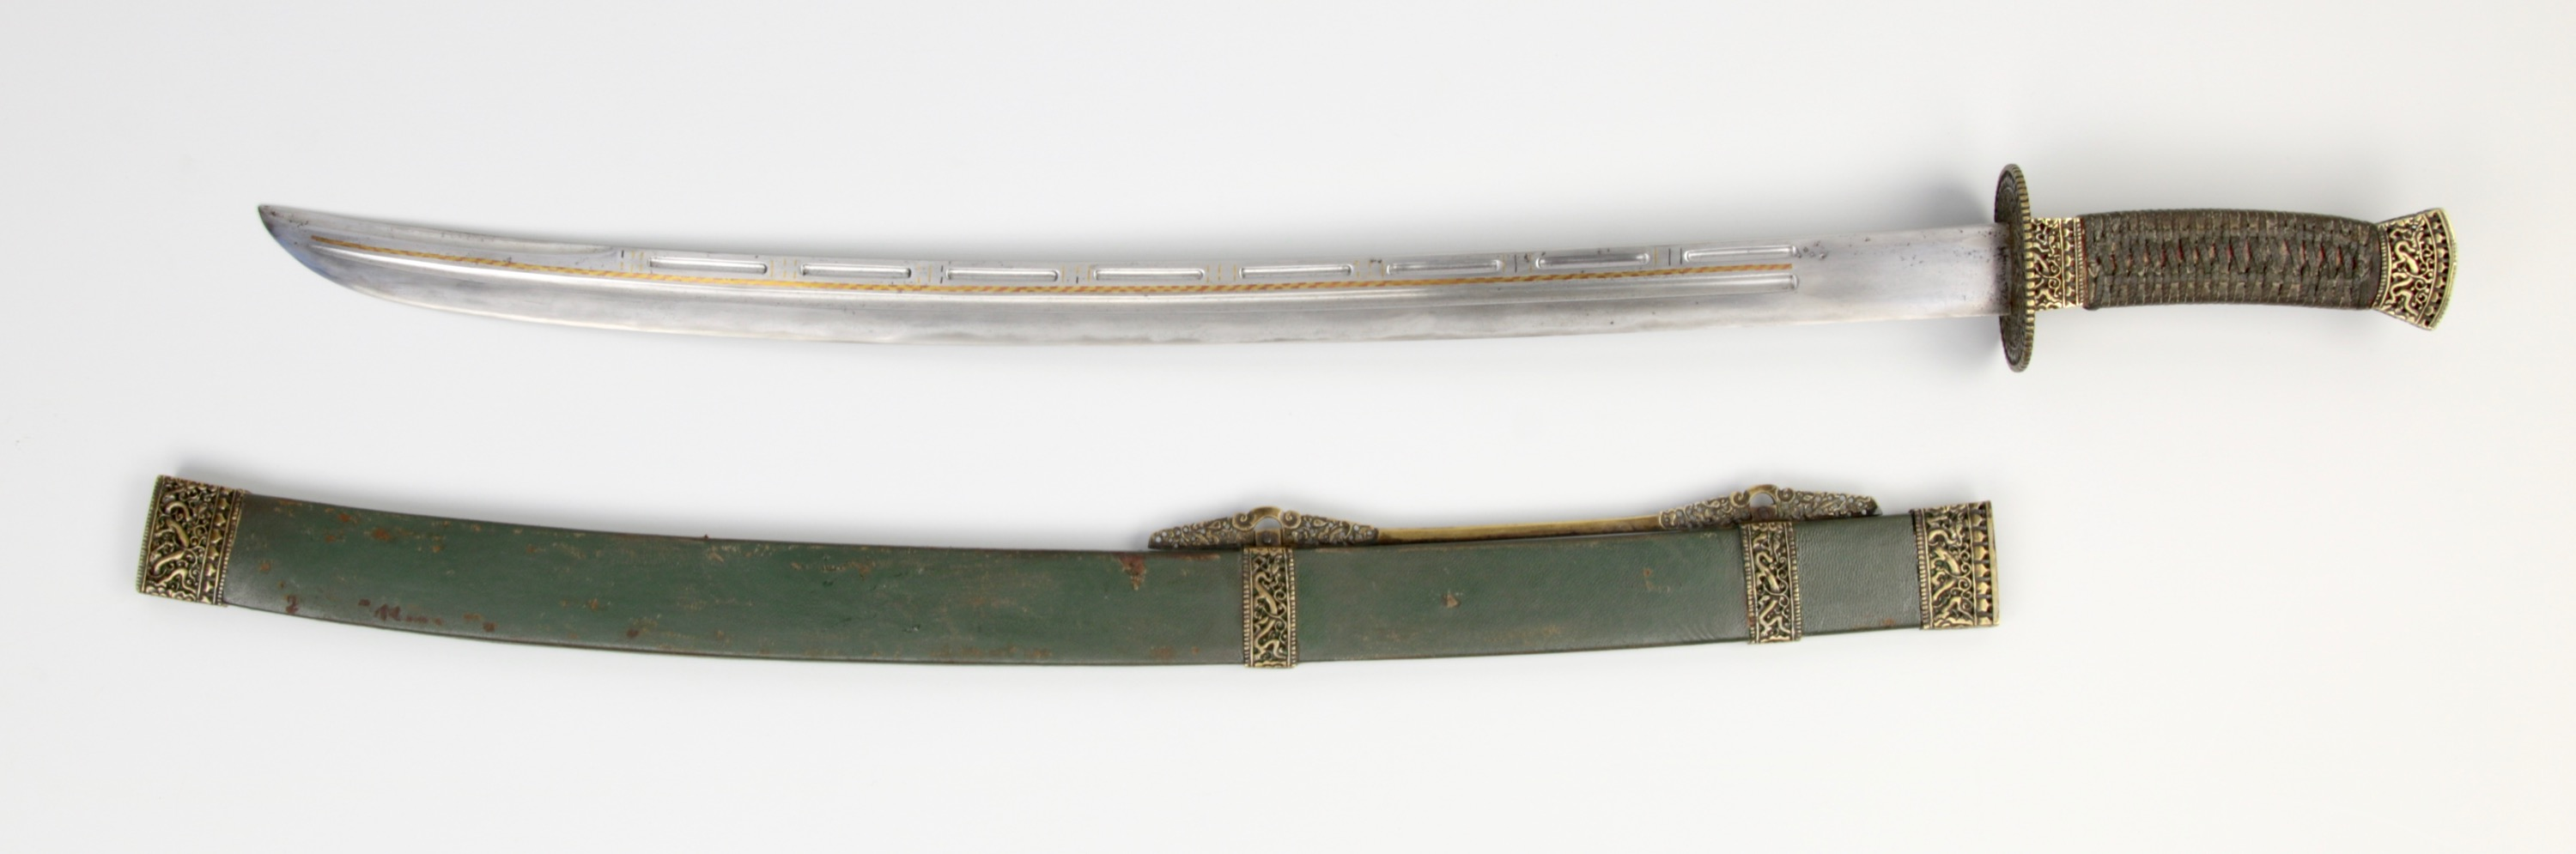 Antique Chinese saber with segmented grooves